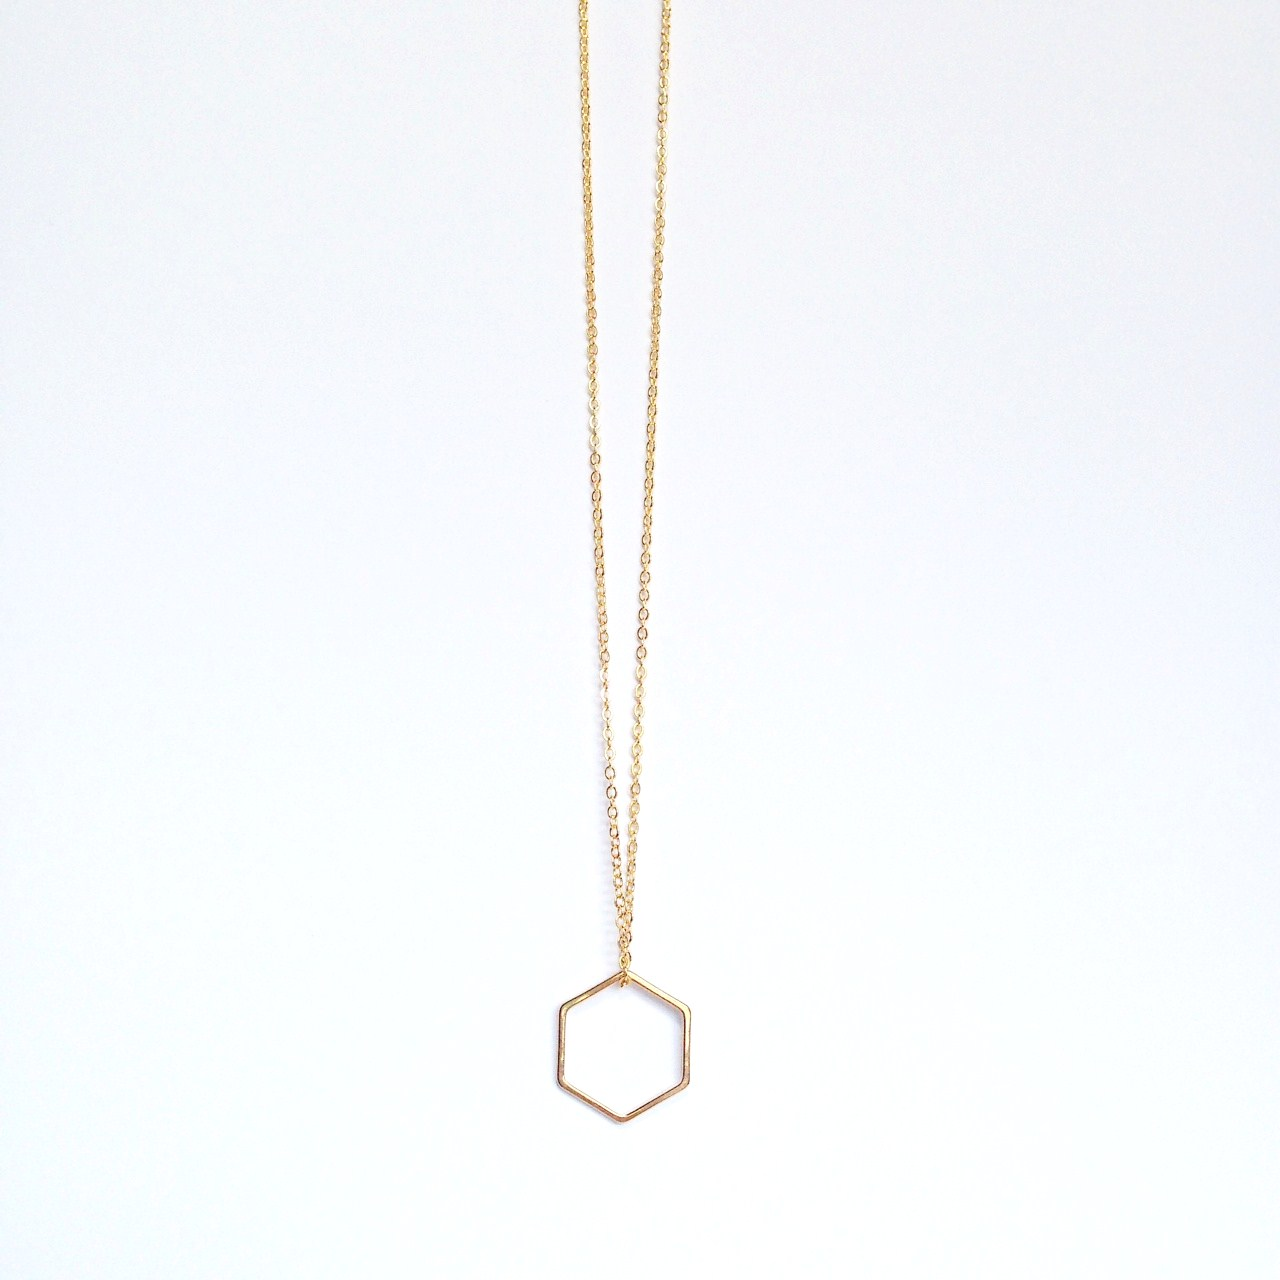 pearson lindsay necklace simple product lindsaypearson solid by gold disc original